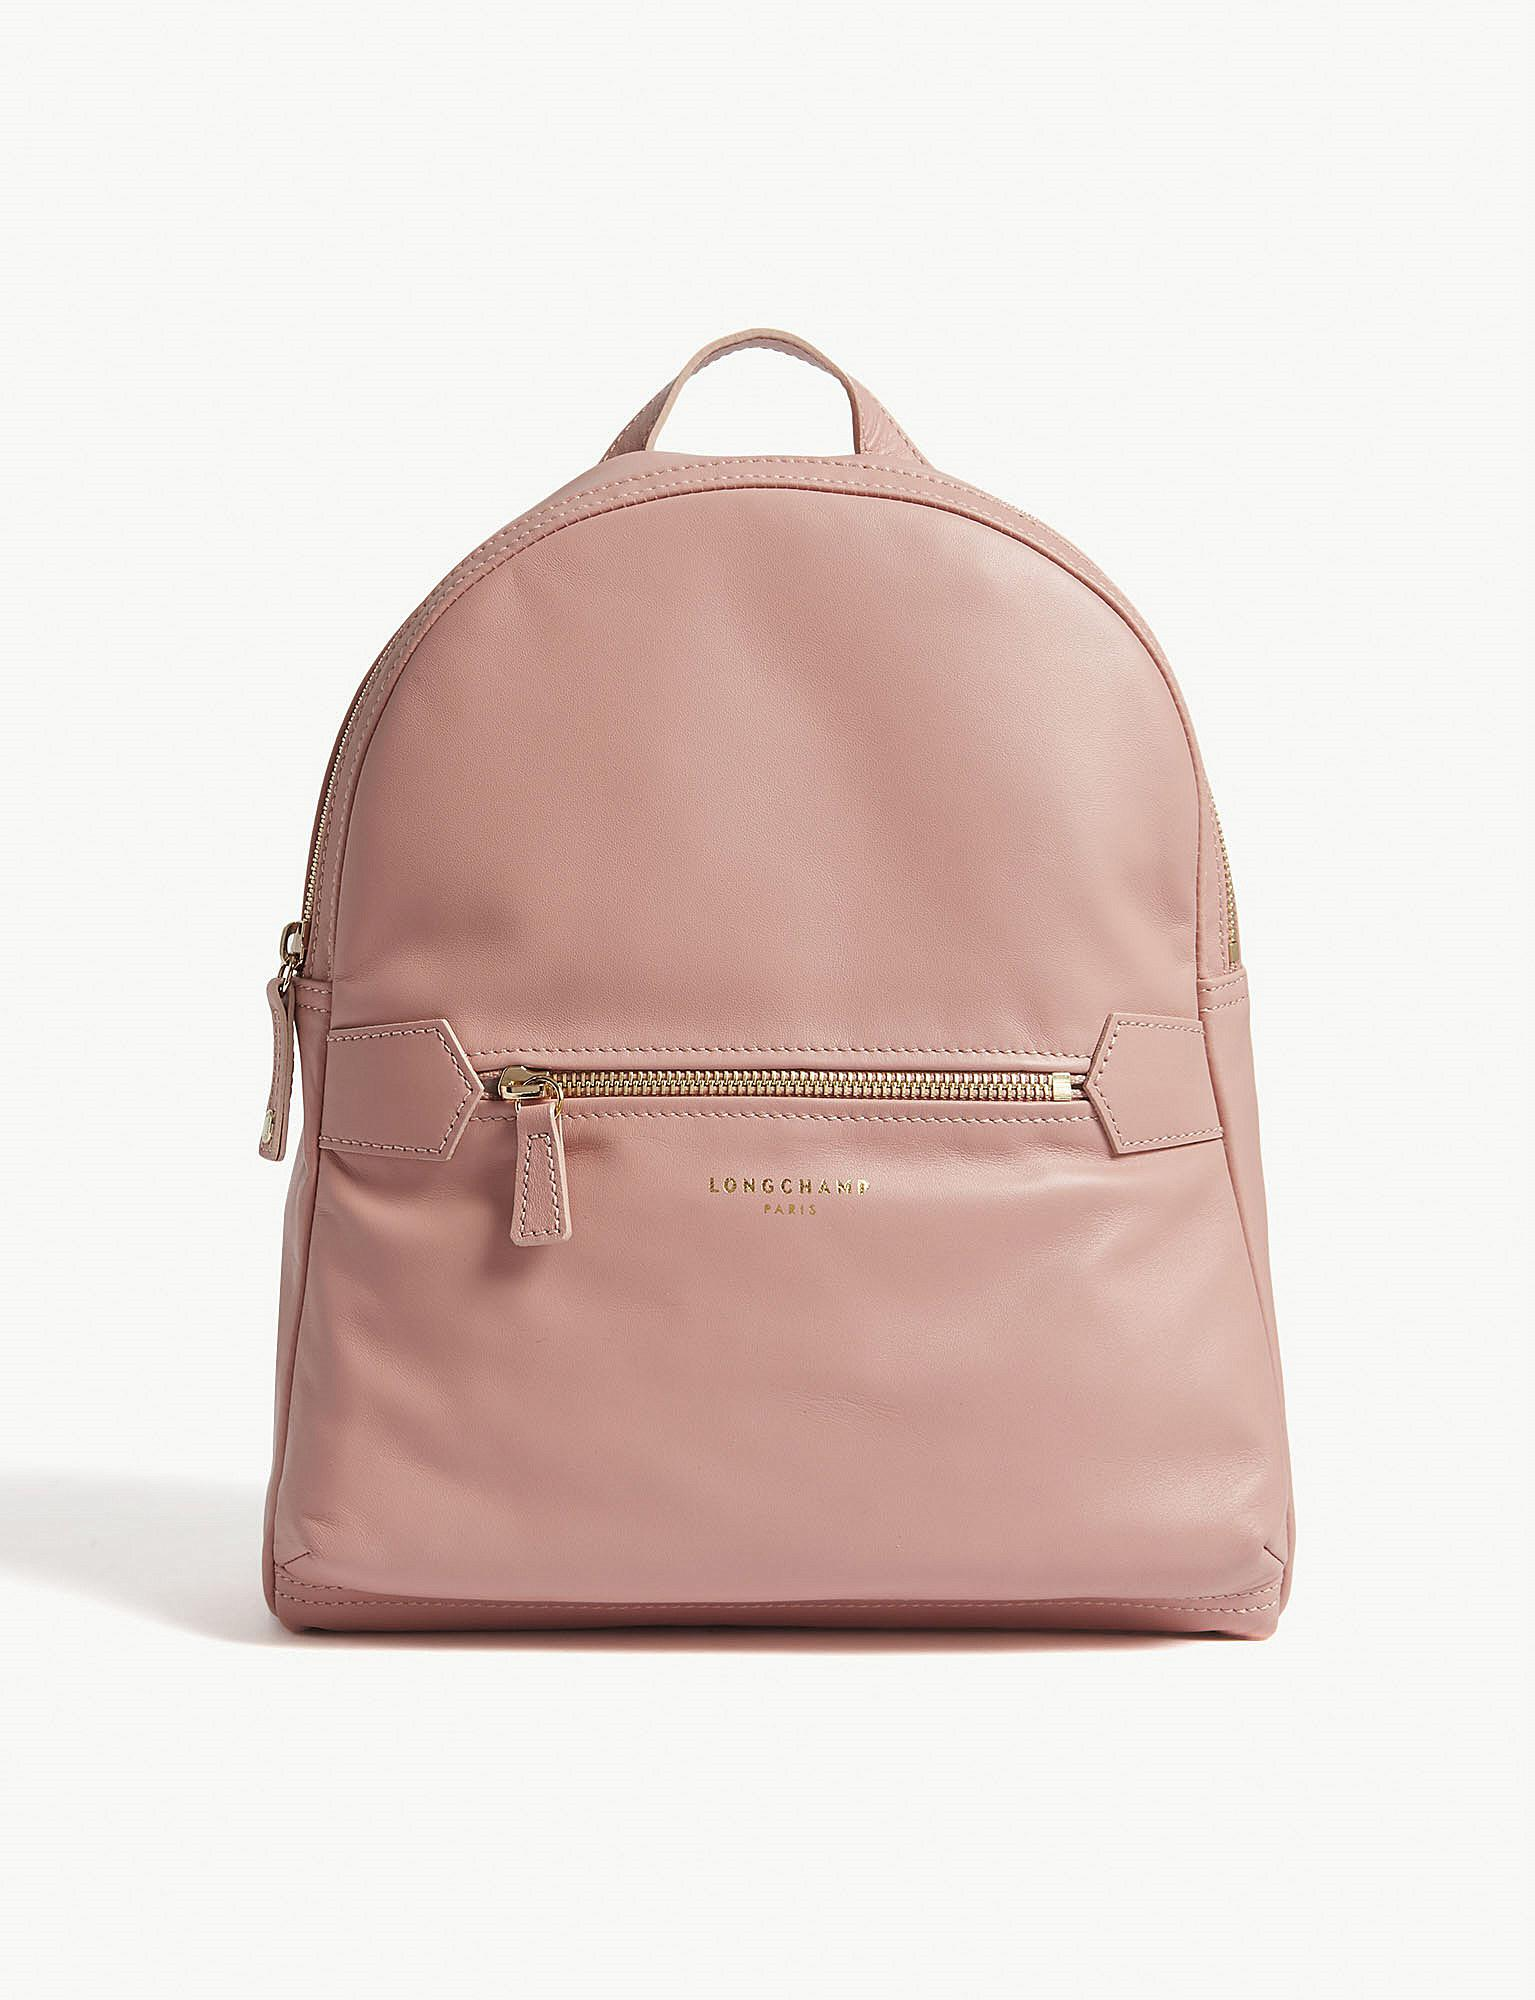 d2937d5cc68d Longchamp 2.0 Medium Leather Backpack in Pink - Lyst